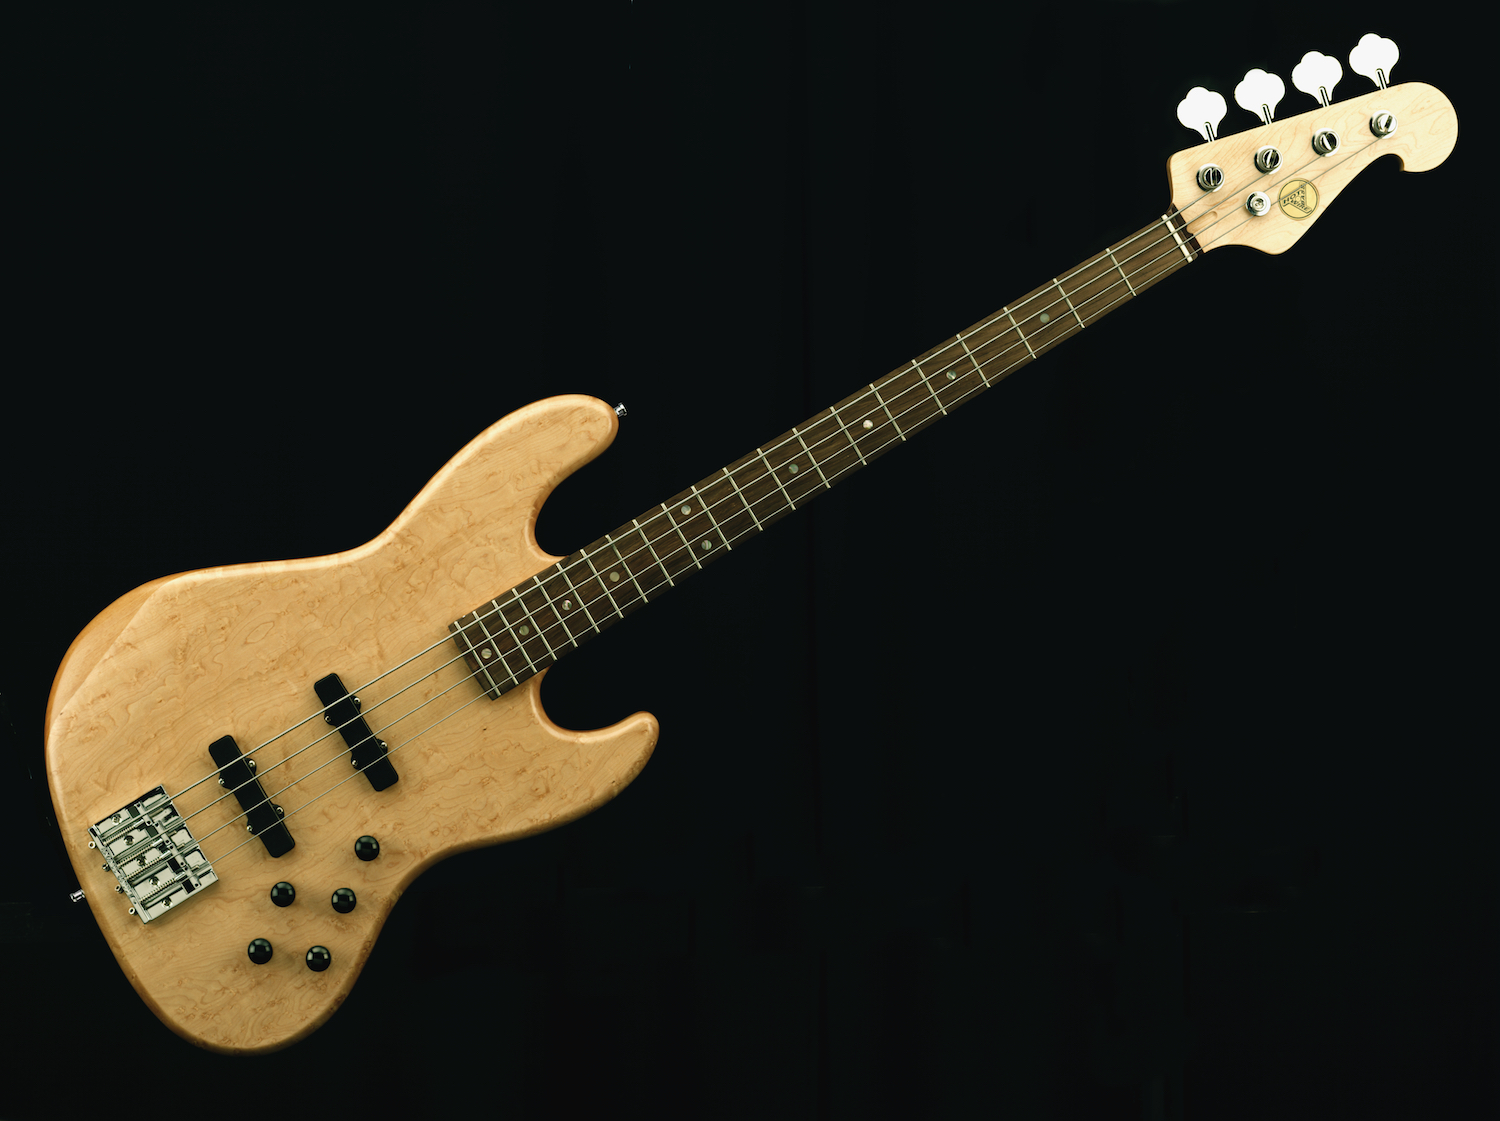 Jay Bass - The Hot Wire Jay Bass is our contemporary version of the ever-popular J-Bass model and can be totally styled to your liking.